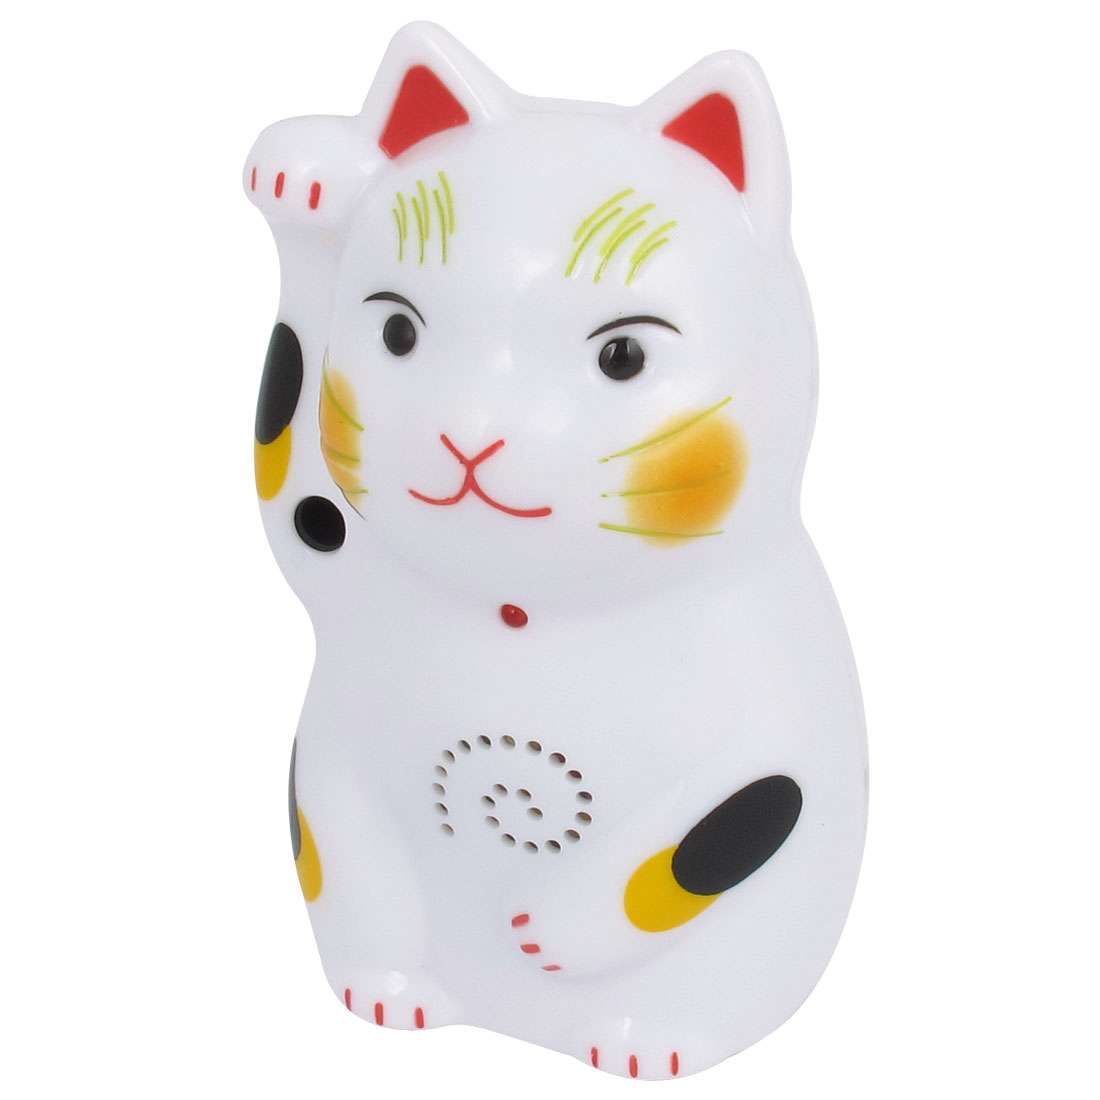 White Plastic Voiced Maneki Neko Lucky Cat Ornament